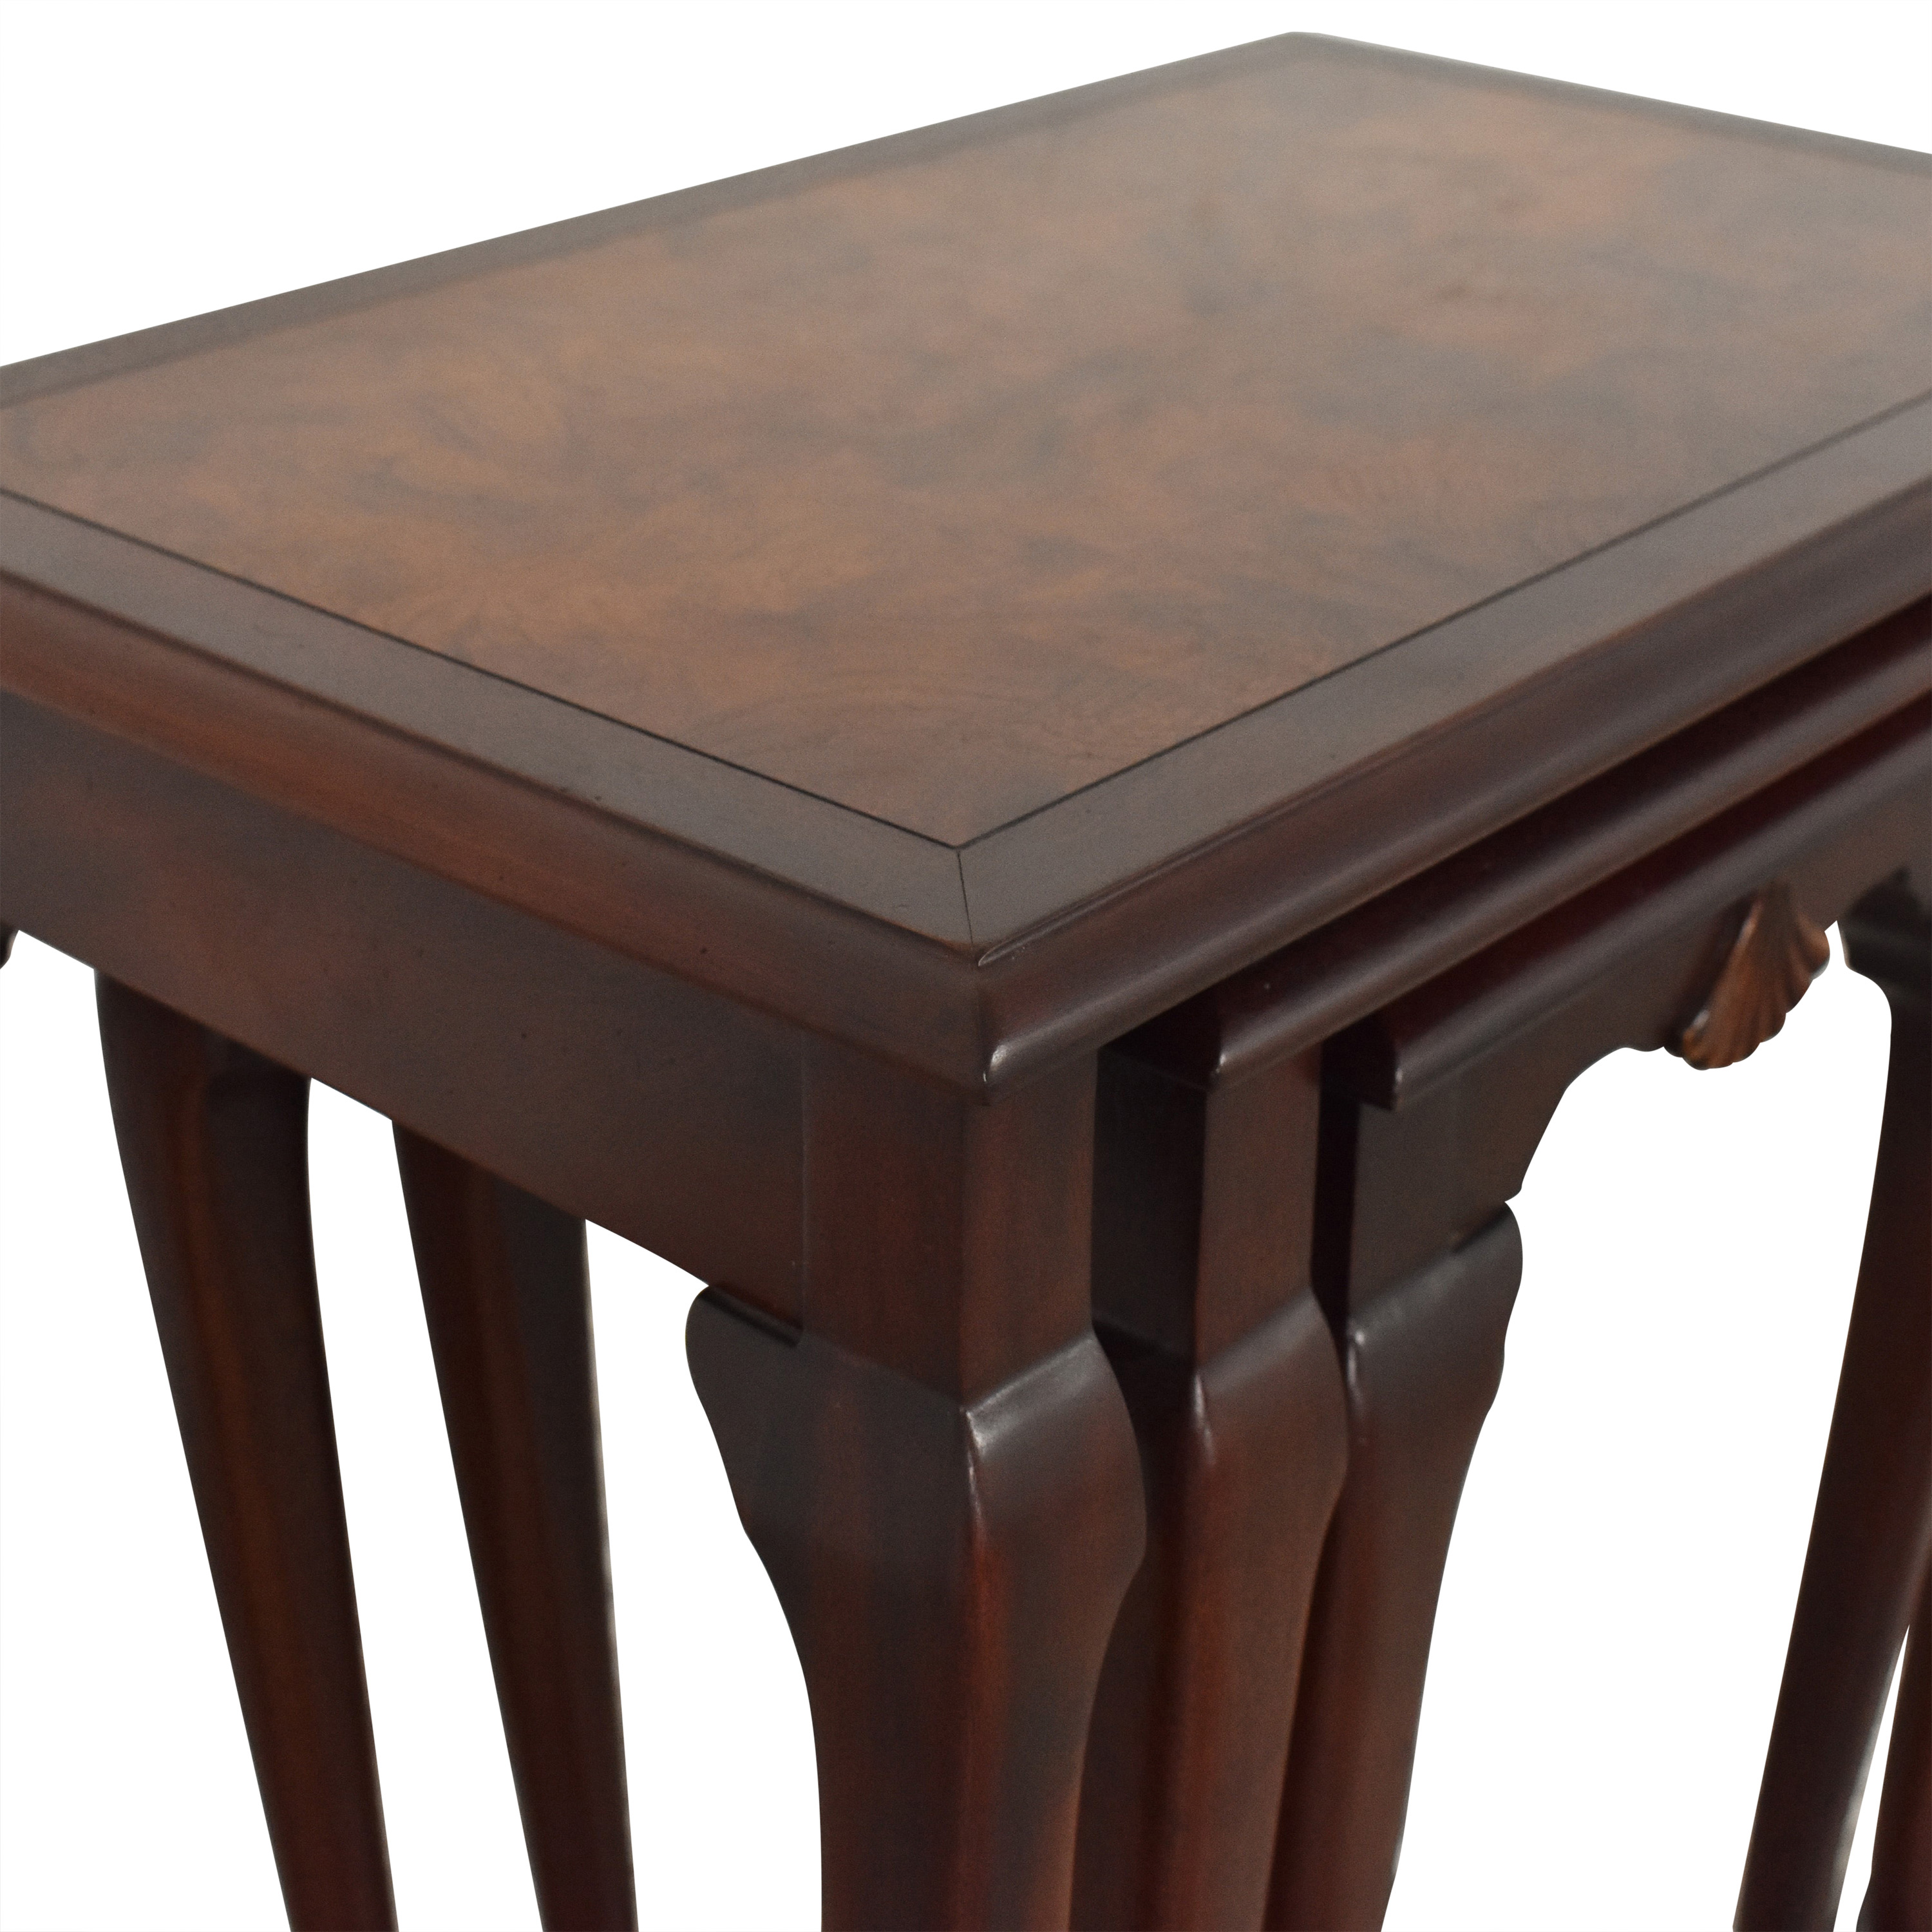 Hekman Furniture Heckman Queen Anne Style Nest of Tables used